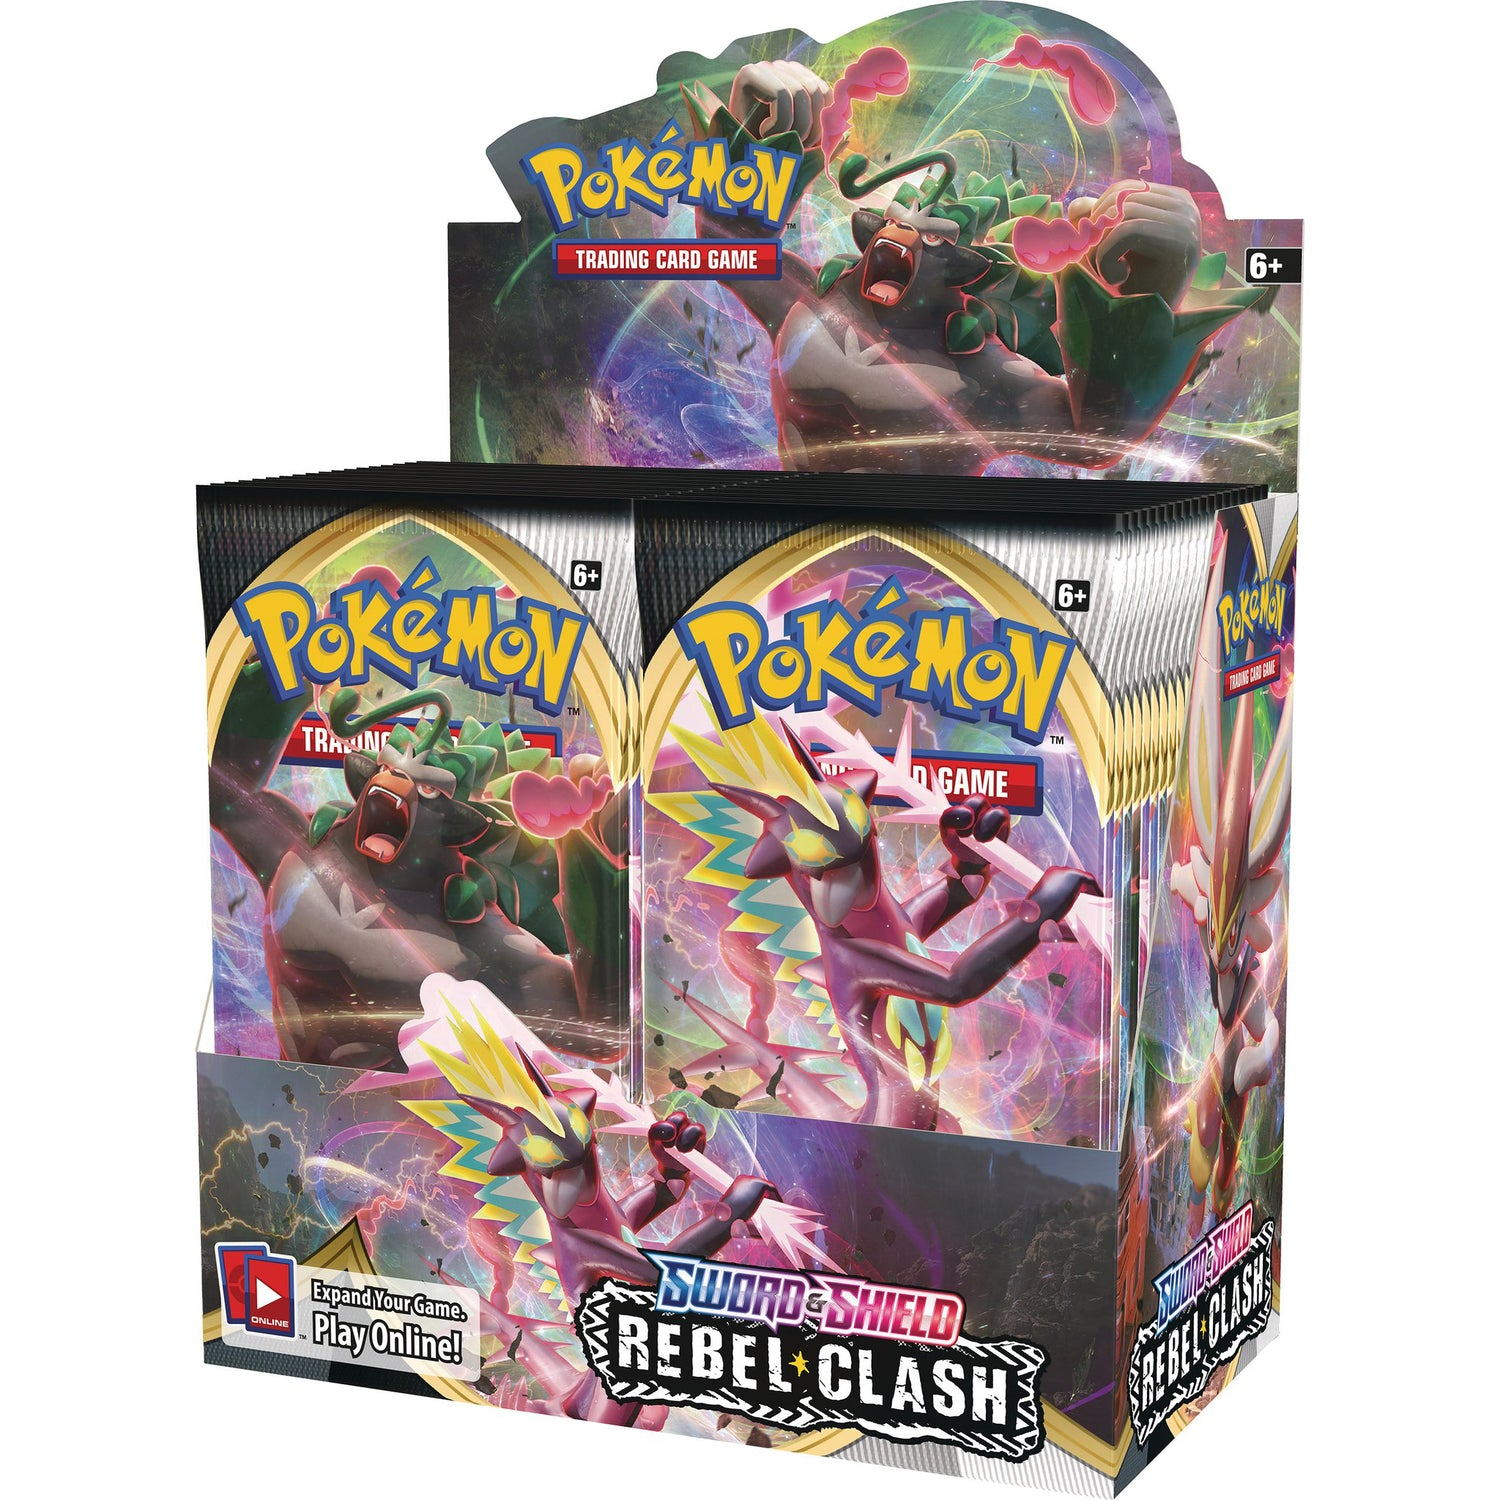 Pokémon Sword & Shield Rebel Clash Booster Box